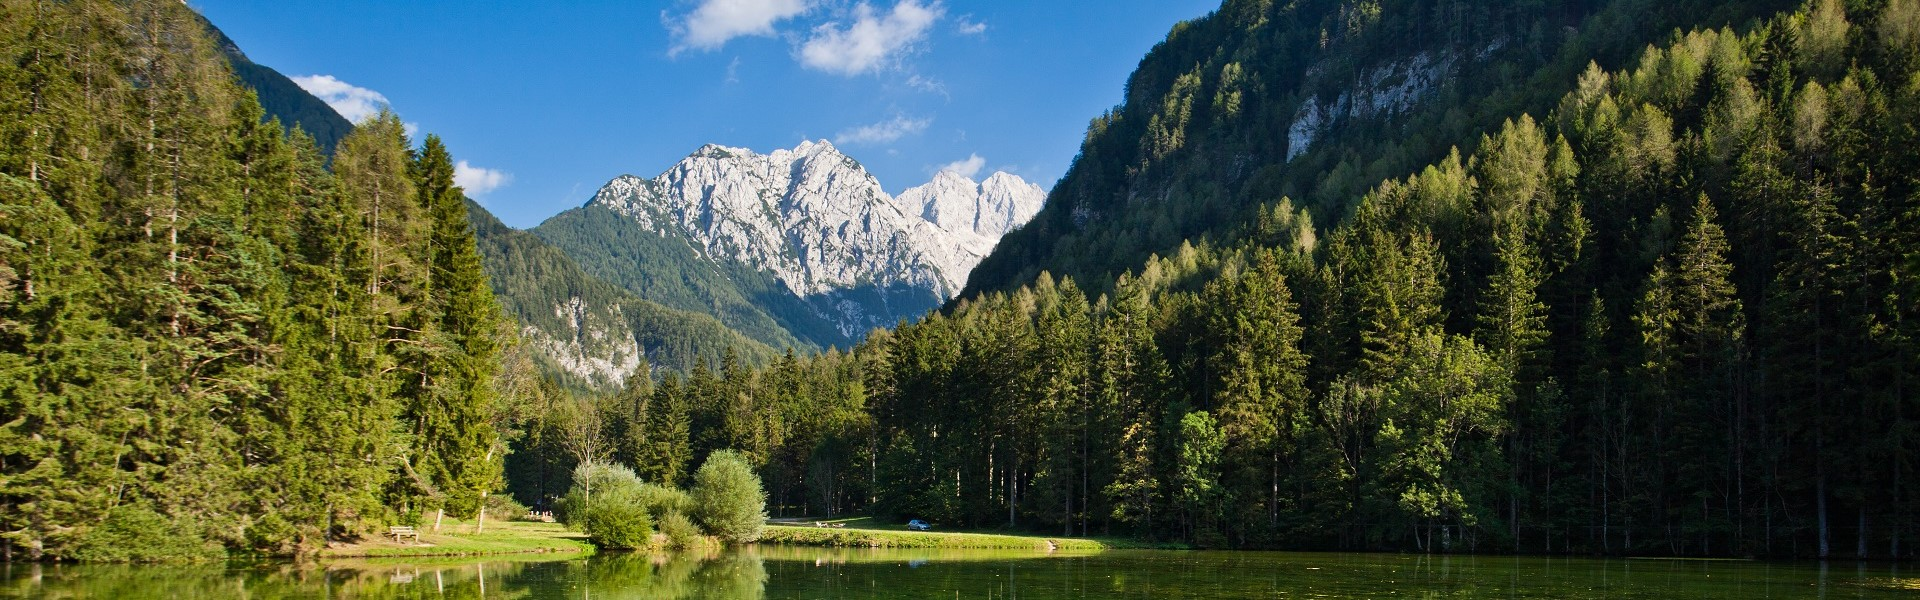 WE ARE REVEALING LESSER-KNOWN SLOVENIAN GEMS